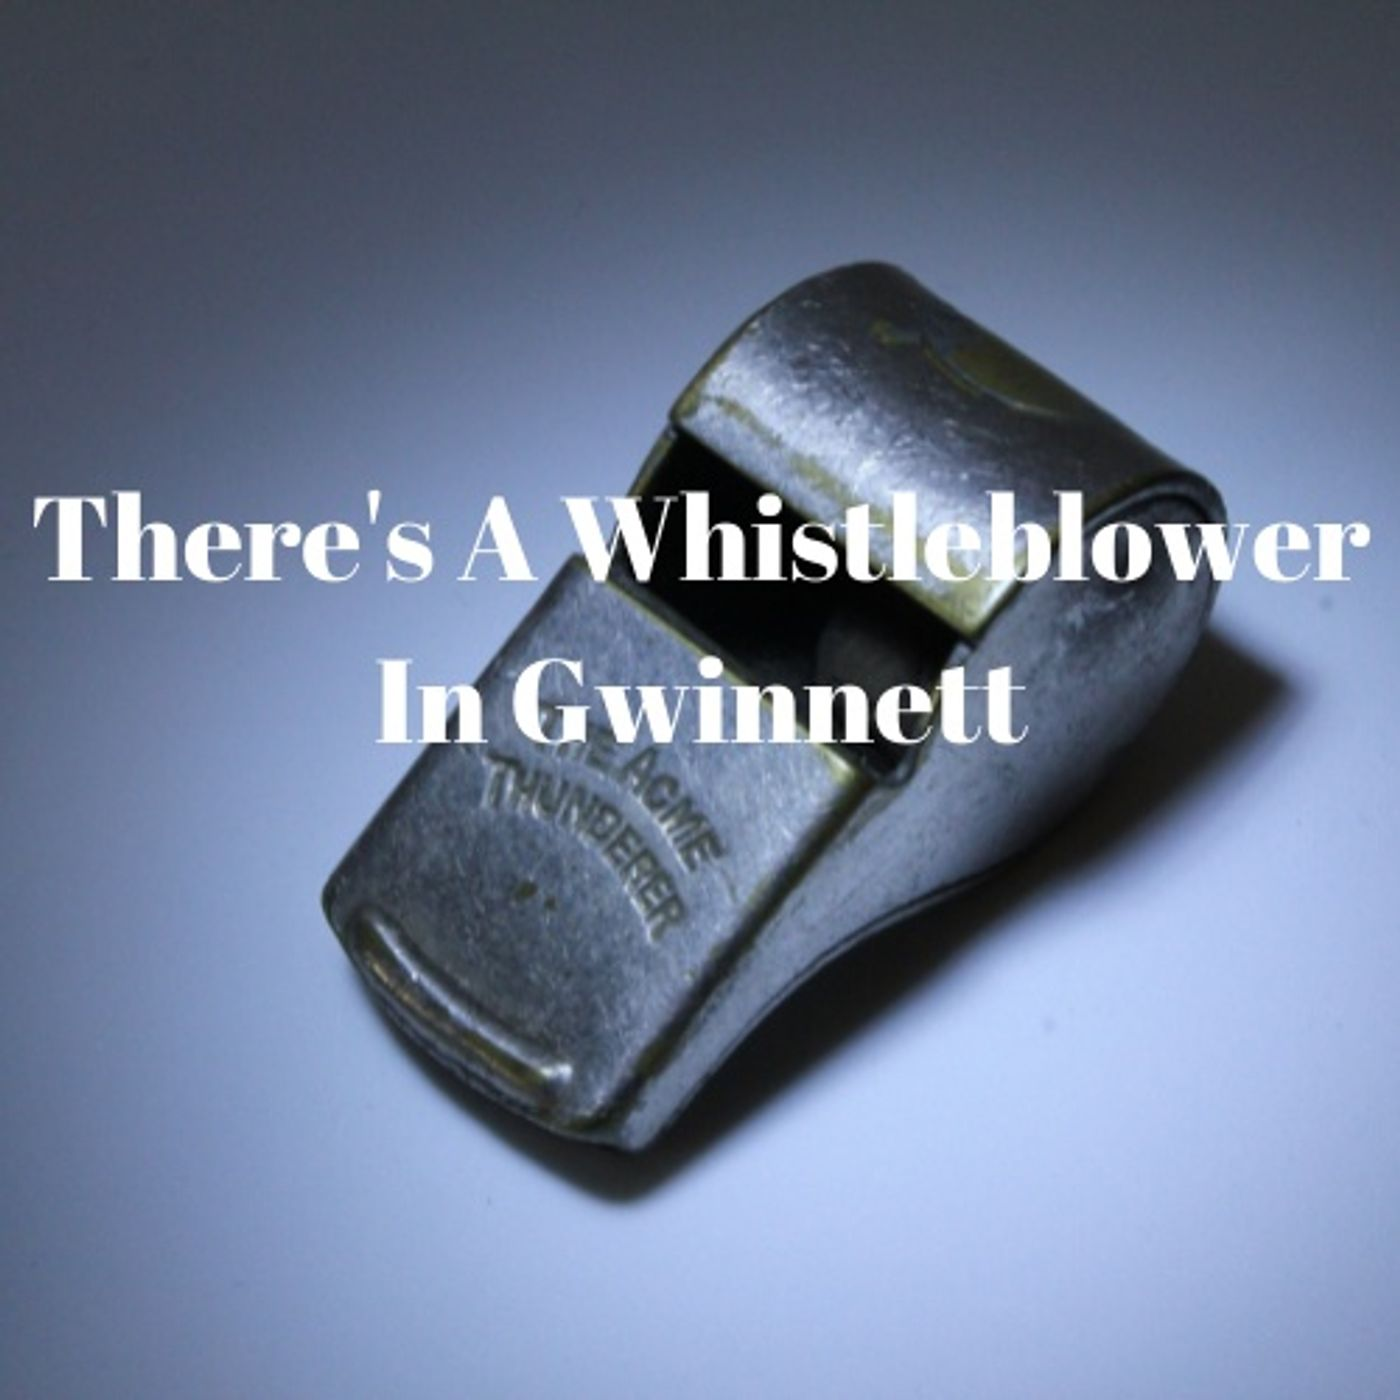 Oh Crap!  There's A Whistleblower In Gwinnett County